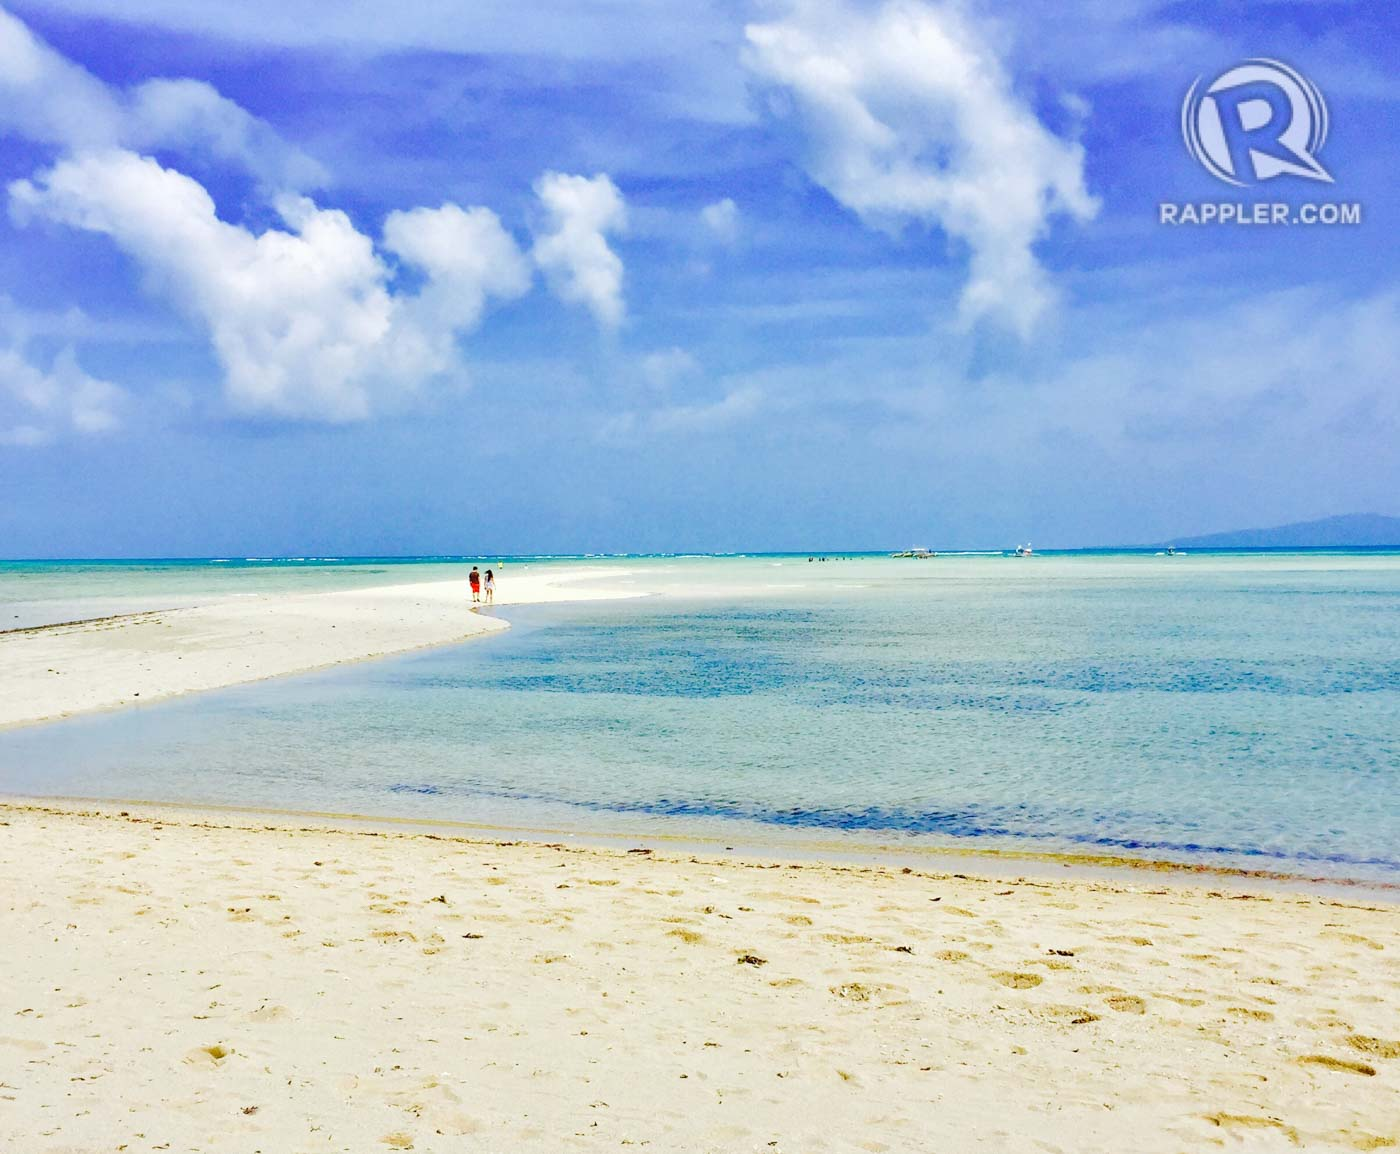 DREAMSCAPE. Cagbalete Island's Instagram-worthy sand bar. Photo by Geruel Monton